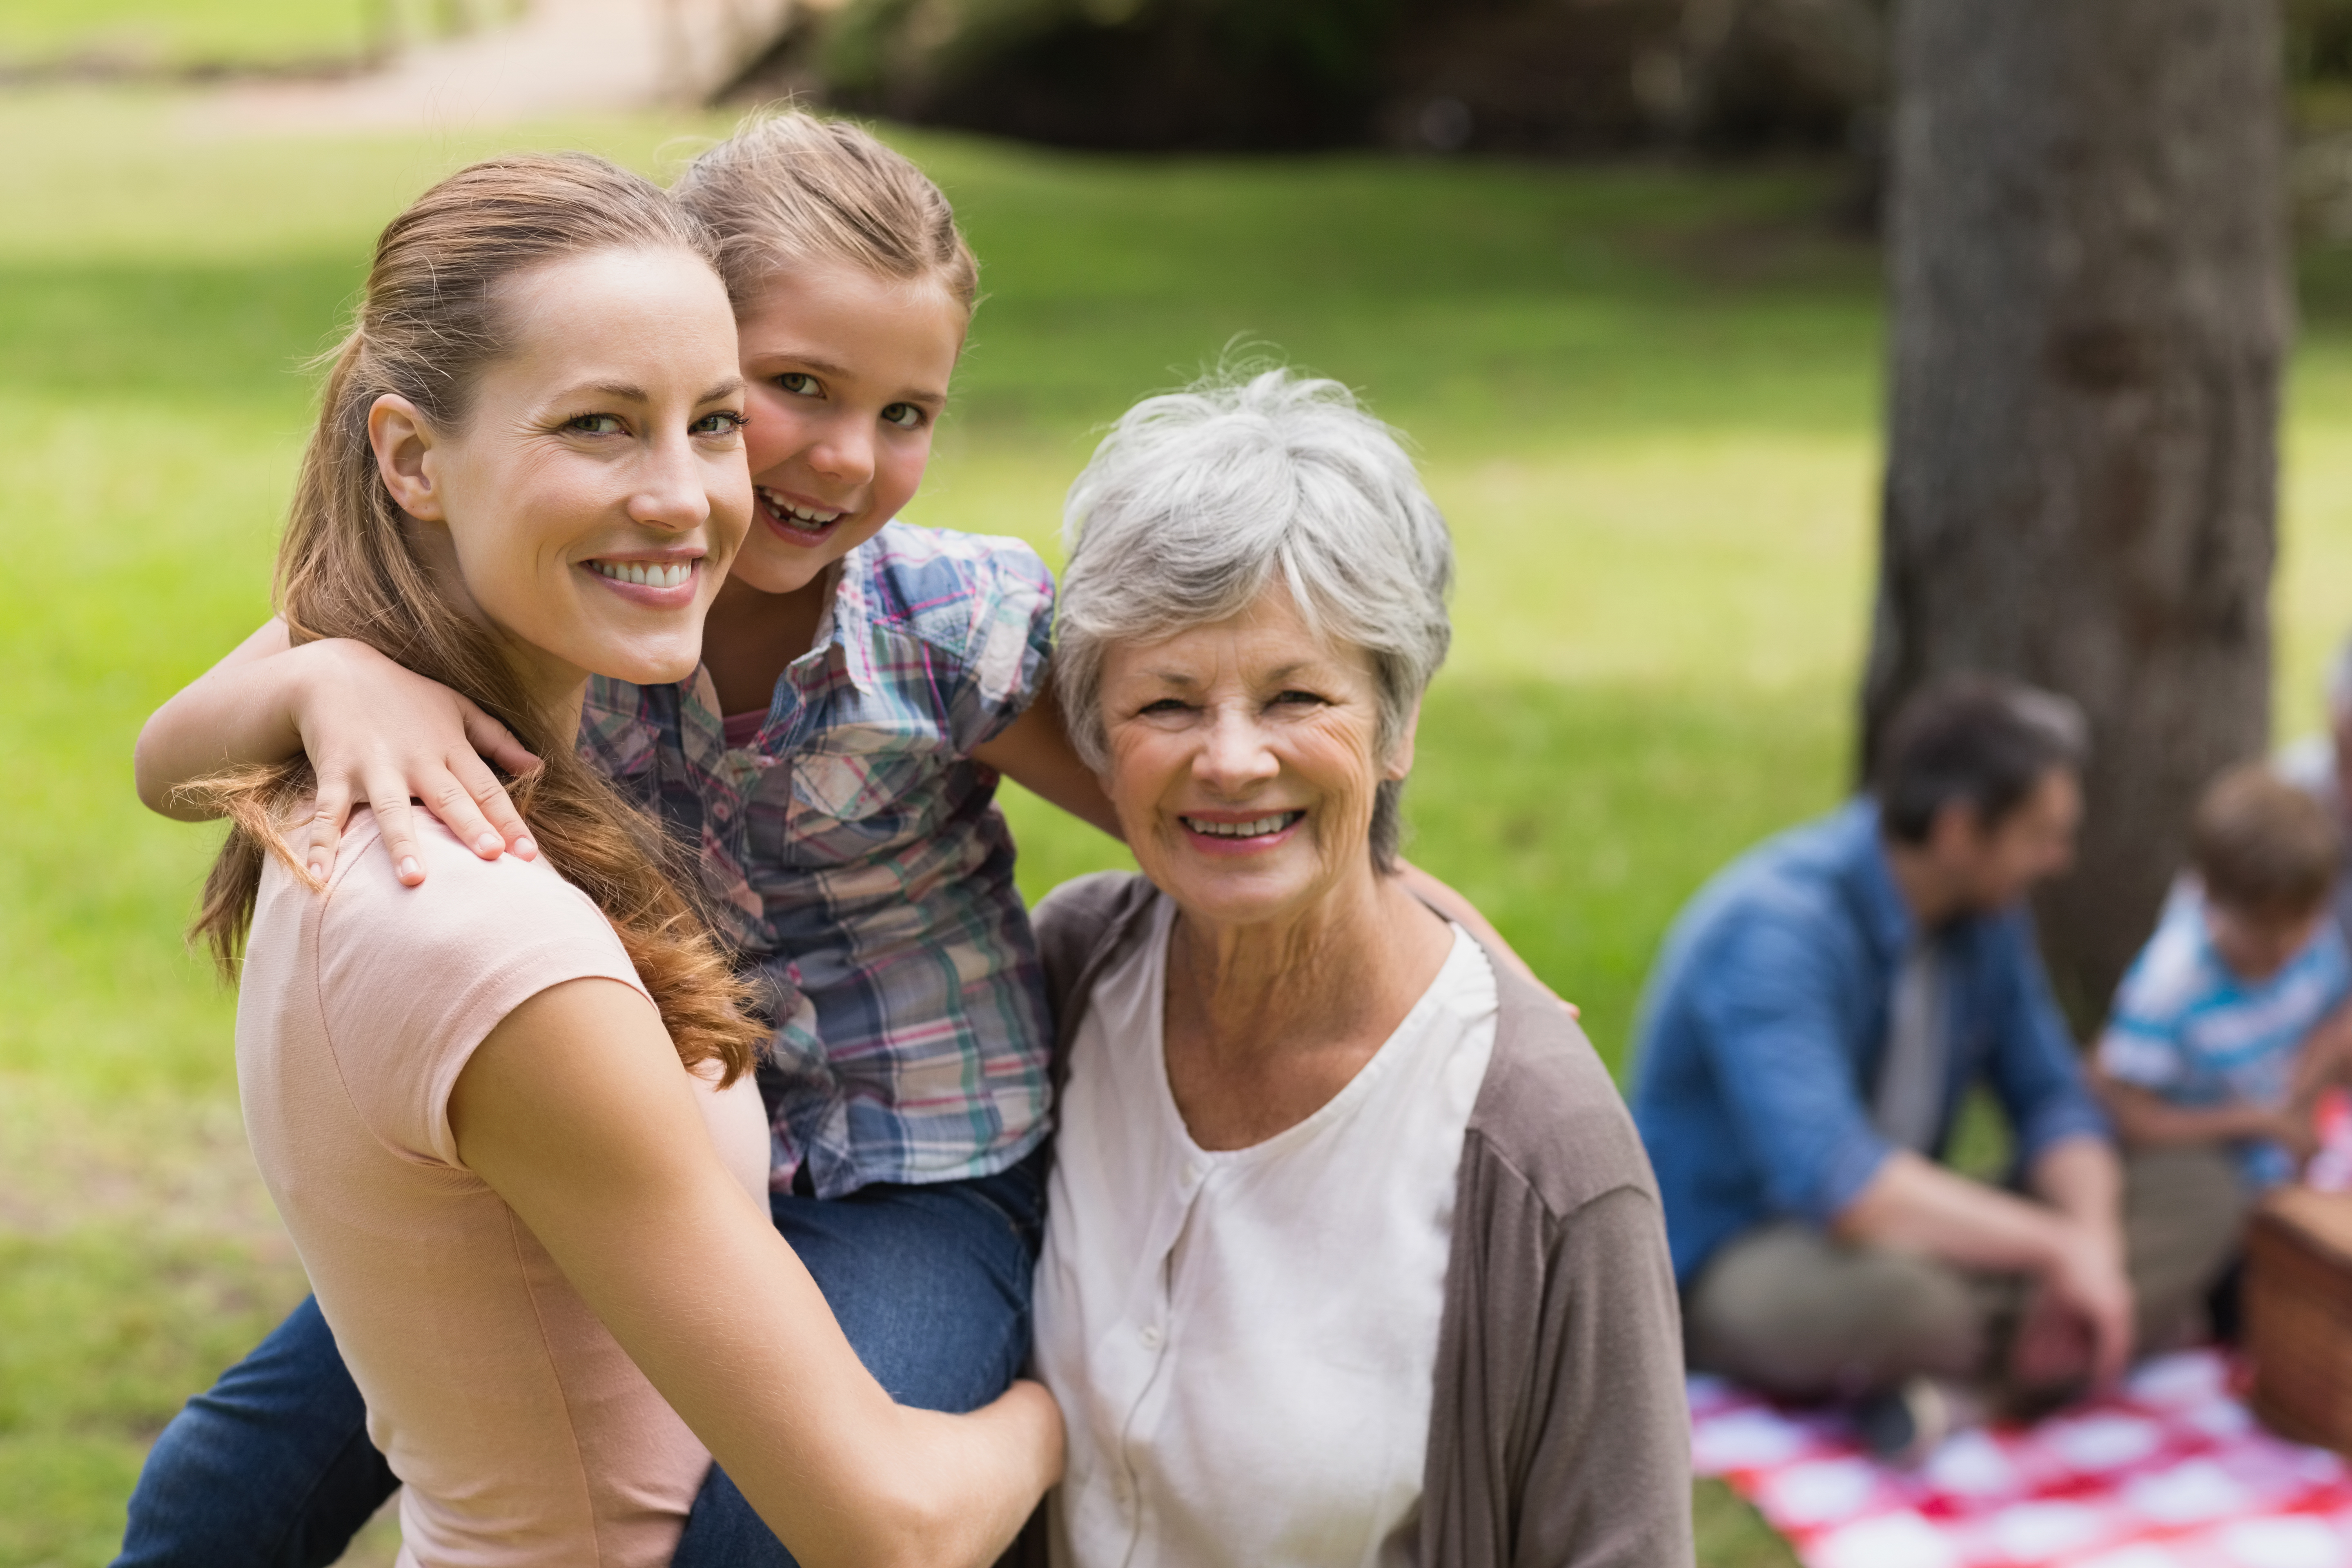 Grandmother mother and daughter with family in background at park